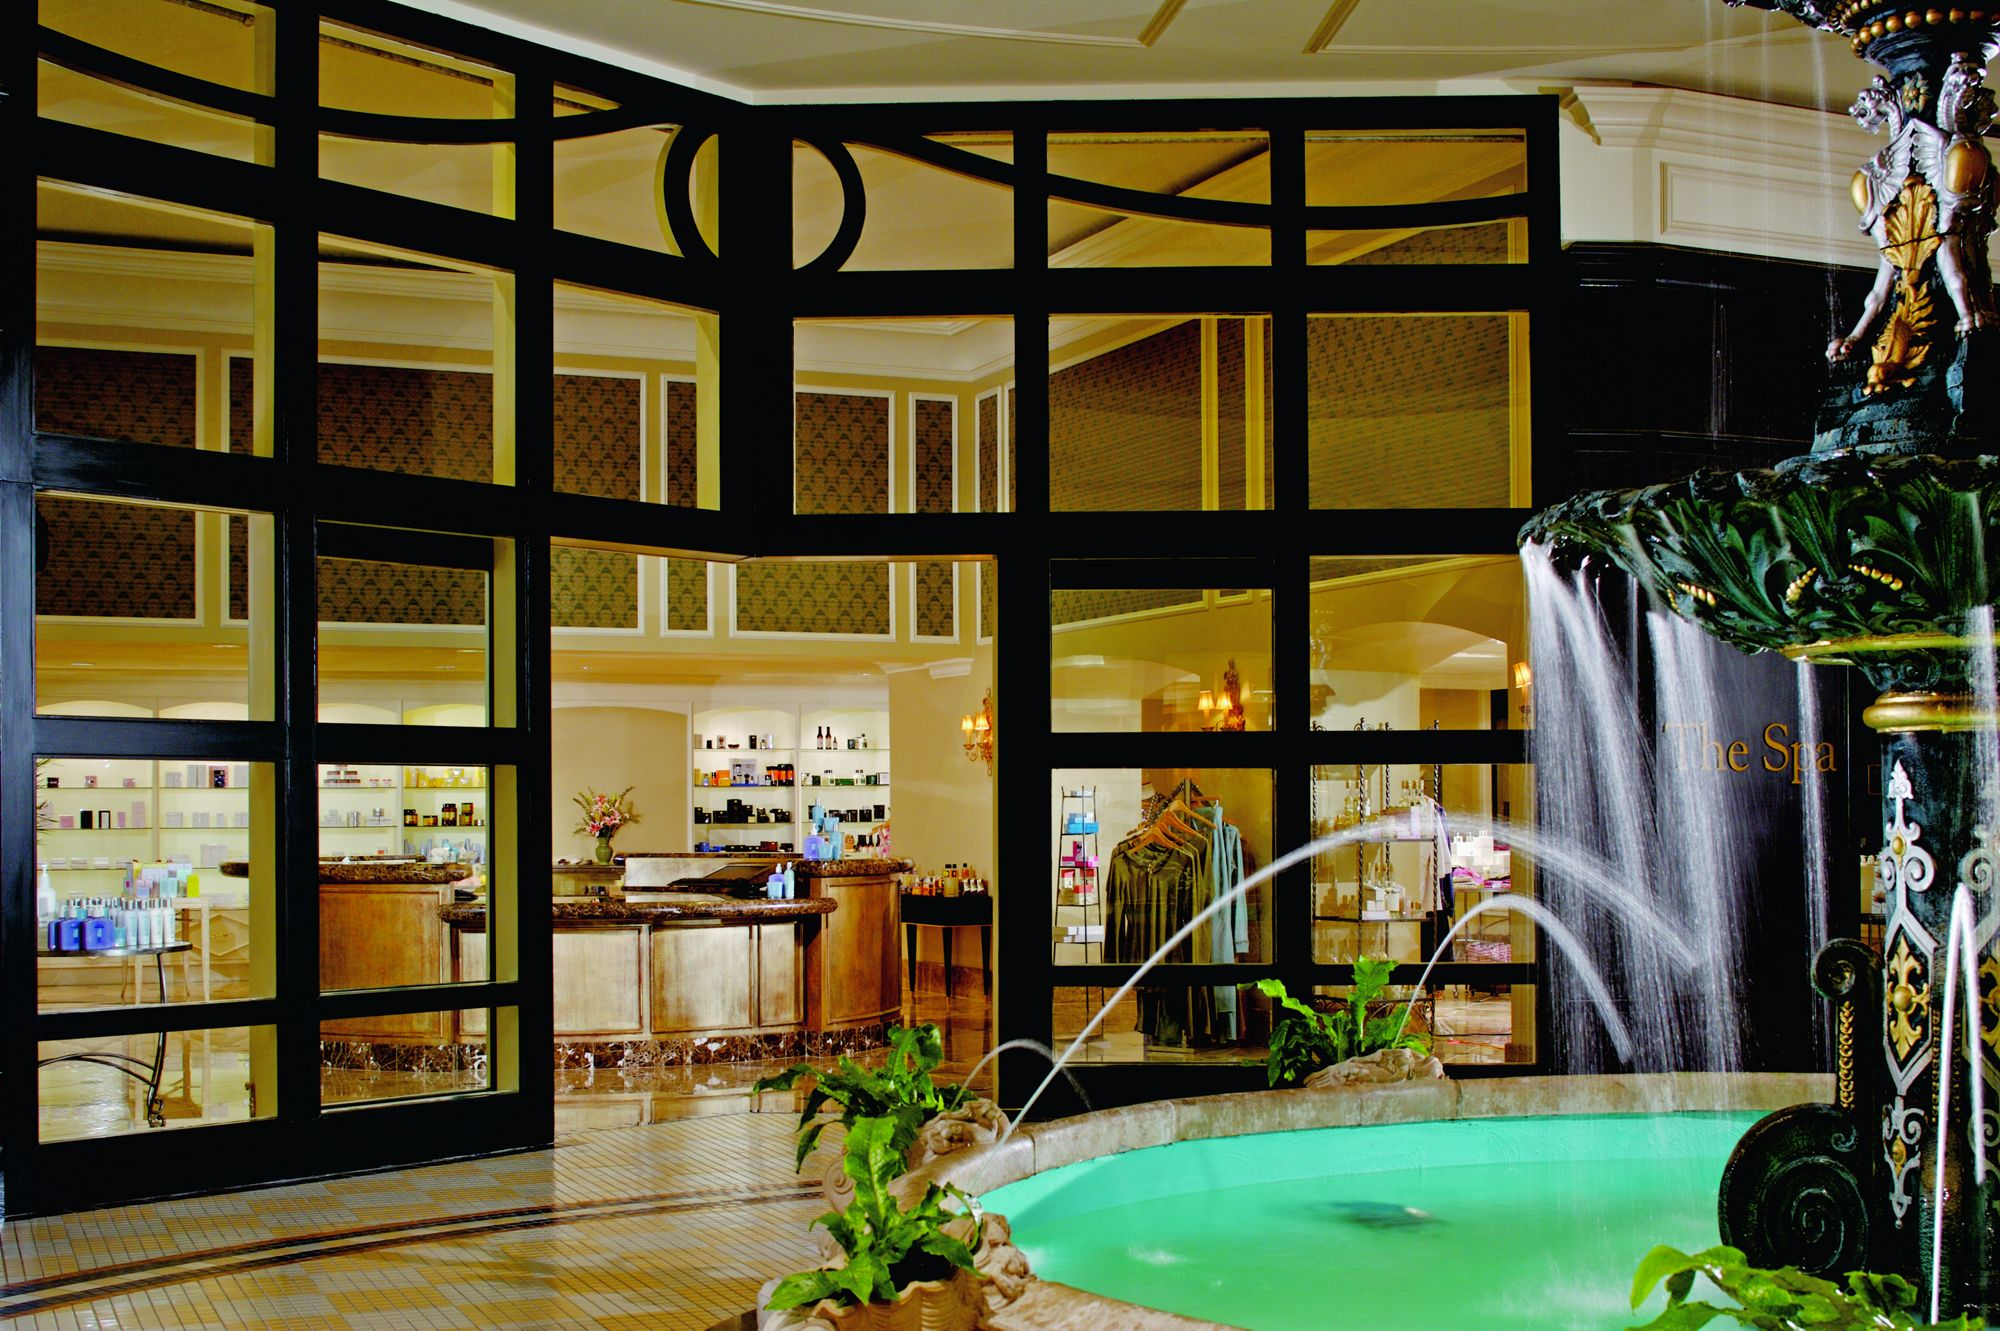 The Ritz-Carlton, New Orleans image 7